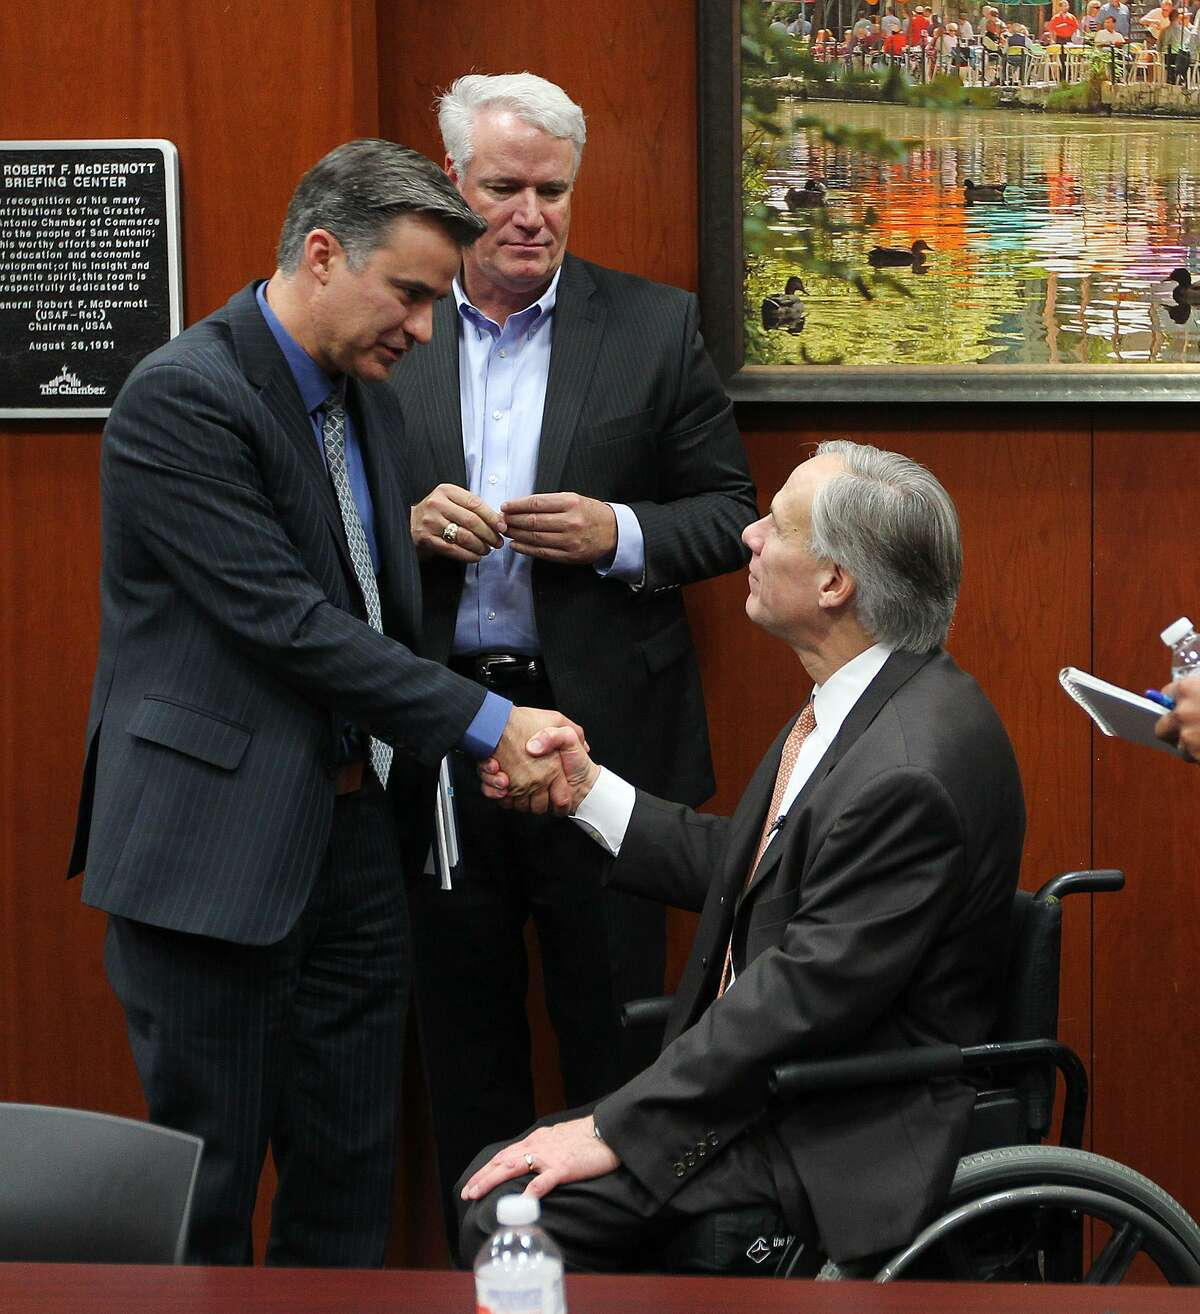 Governor-elect Greg Abbott, right, shakes hands with State Rep. Roland Gutierrez, D-San Antonio, after meeting with area state lawmakers for a legislative roundtable discussion at the San Antonio Chamber of Commerce, Monday, Dec. 15, 2014. Behind them is Rep. Lyle Larson, R-San Antonio. Also at the meeting were San Antonio Democratic representatives Trey Martinez Fischer and Justin Rodriguez.